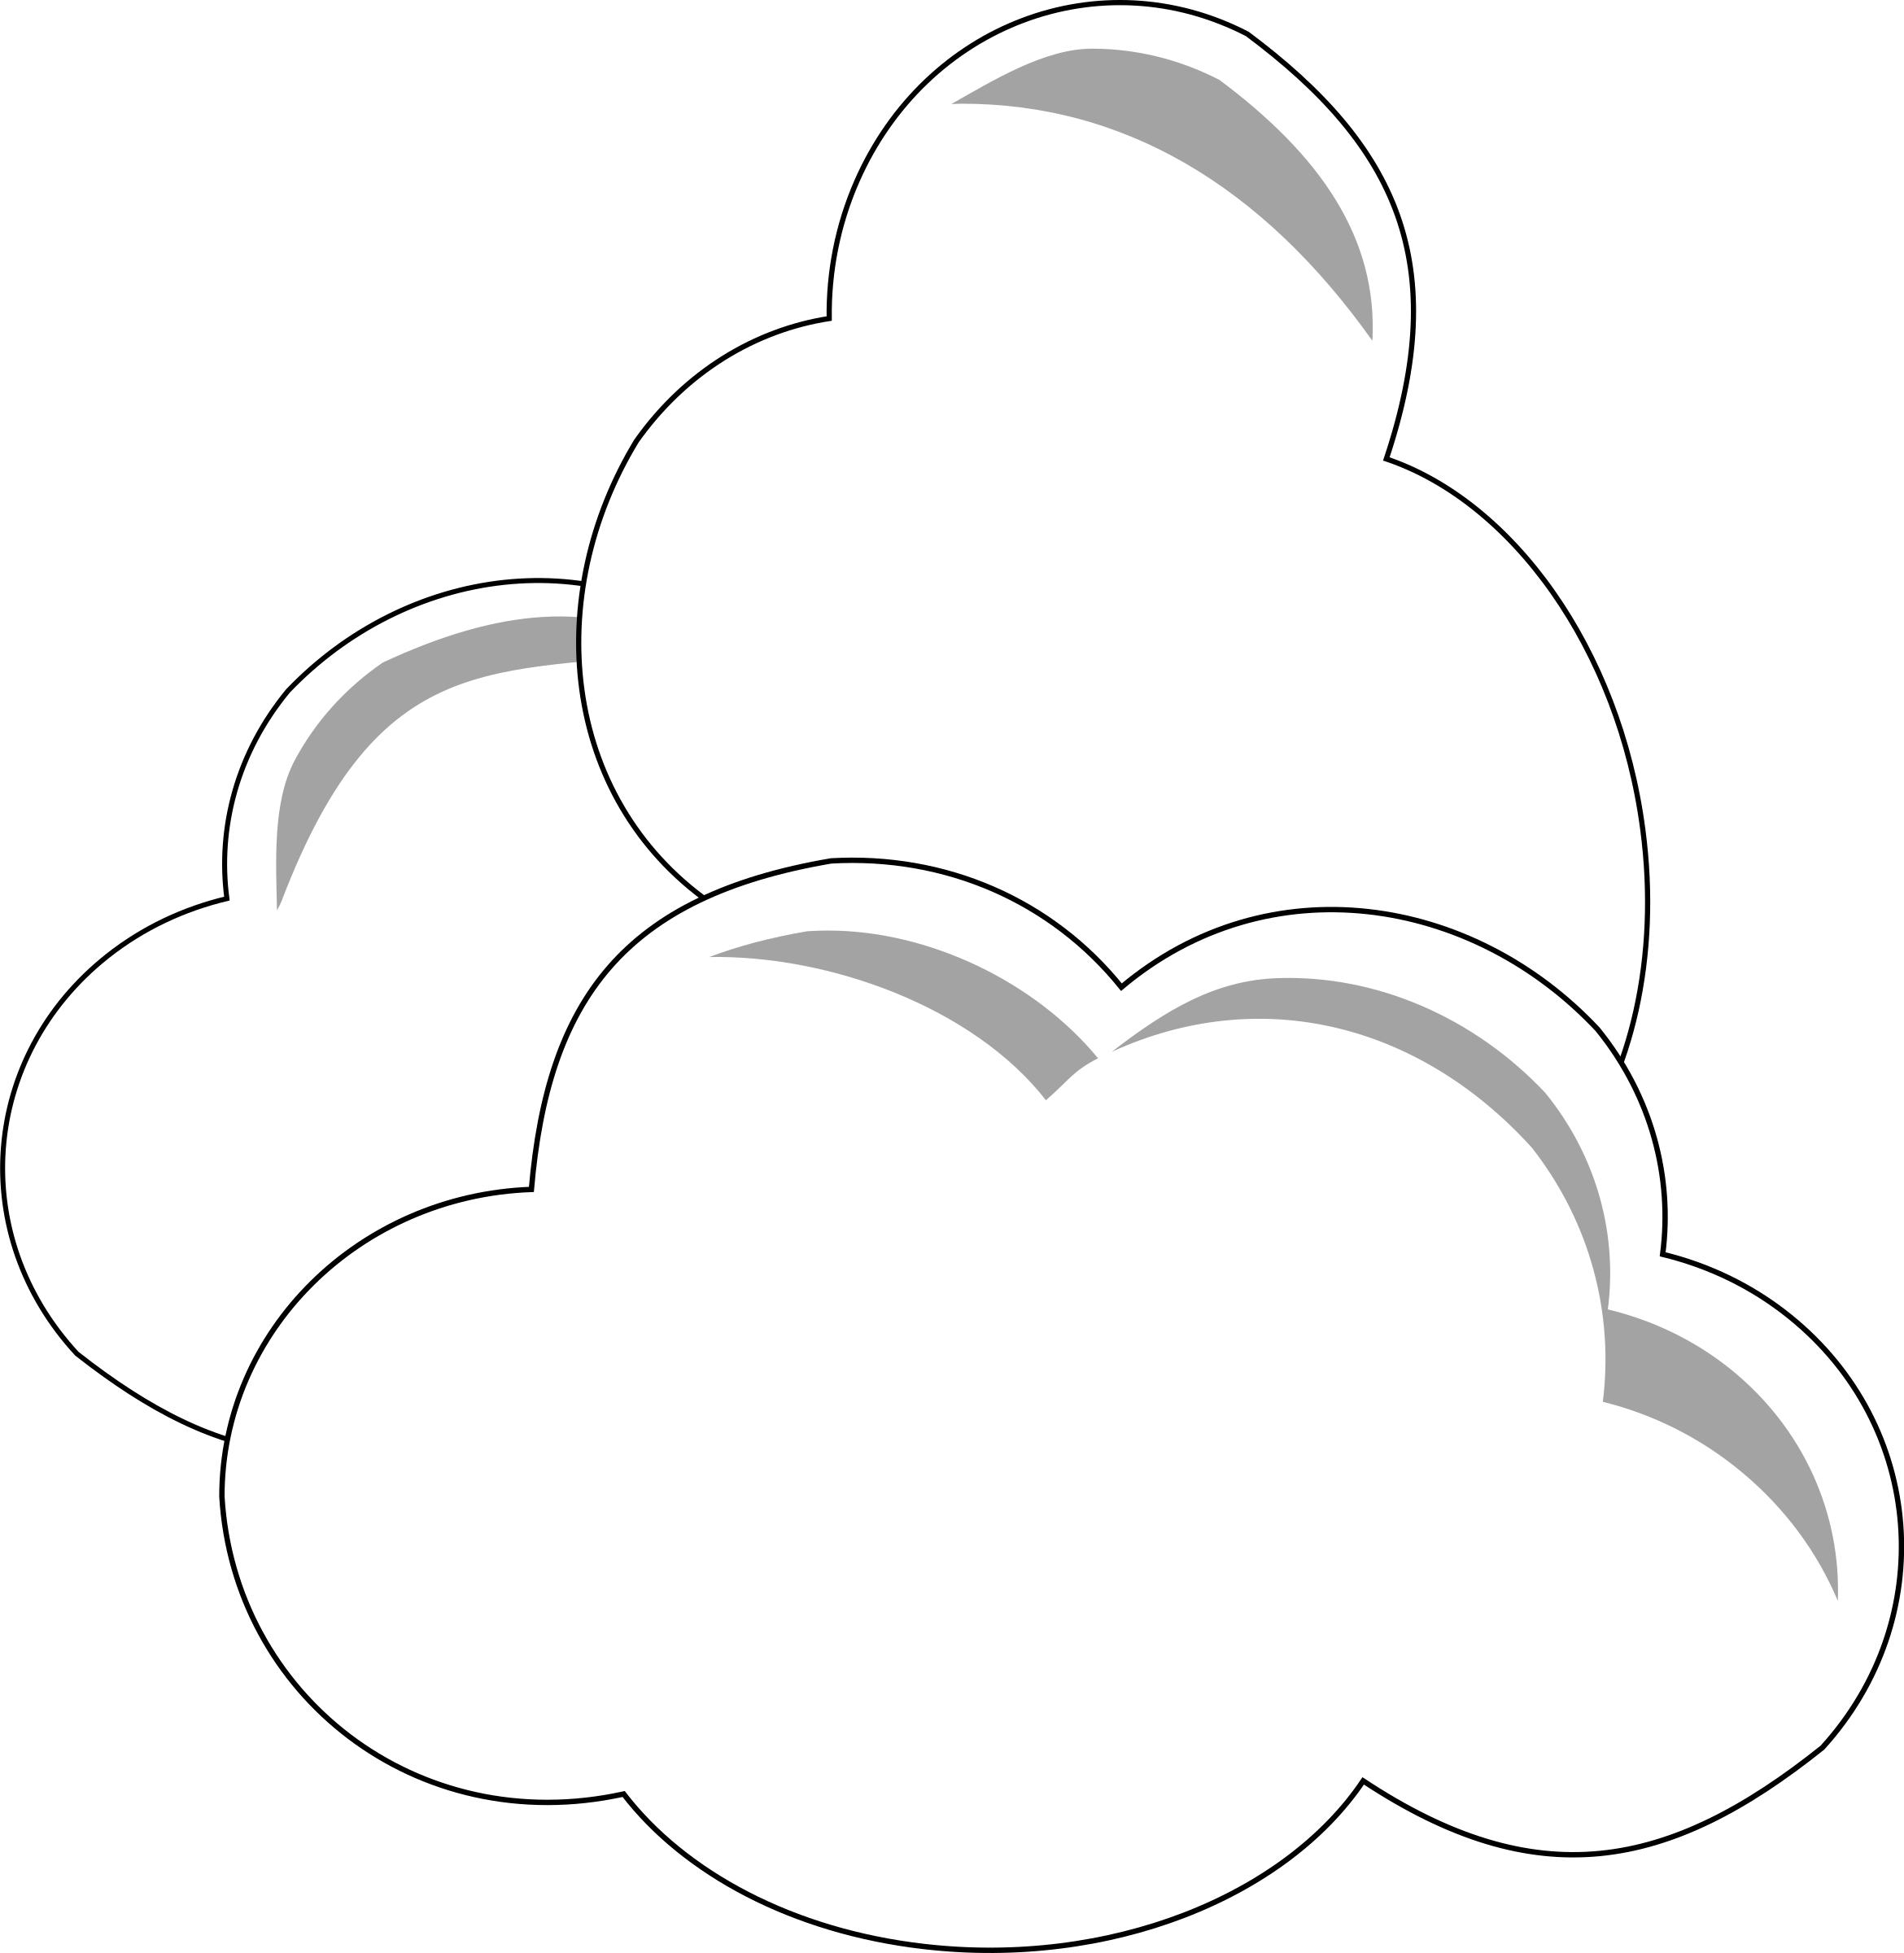 png freeuse library Big image png. Clouds clipart simple.